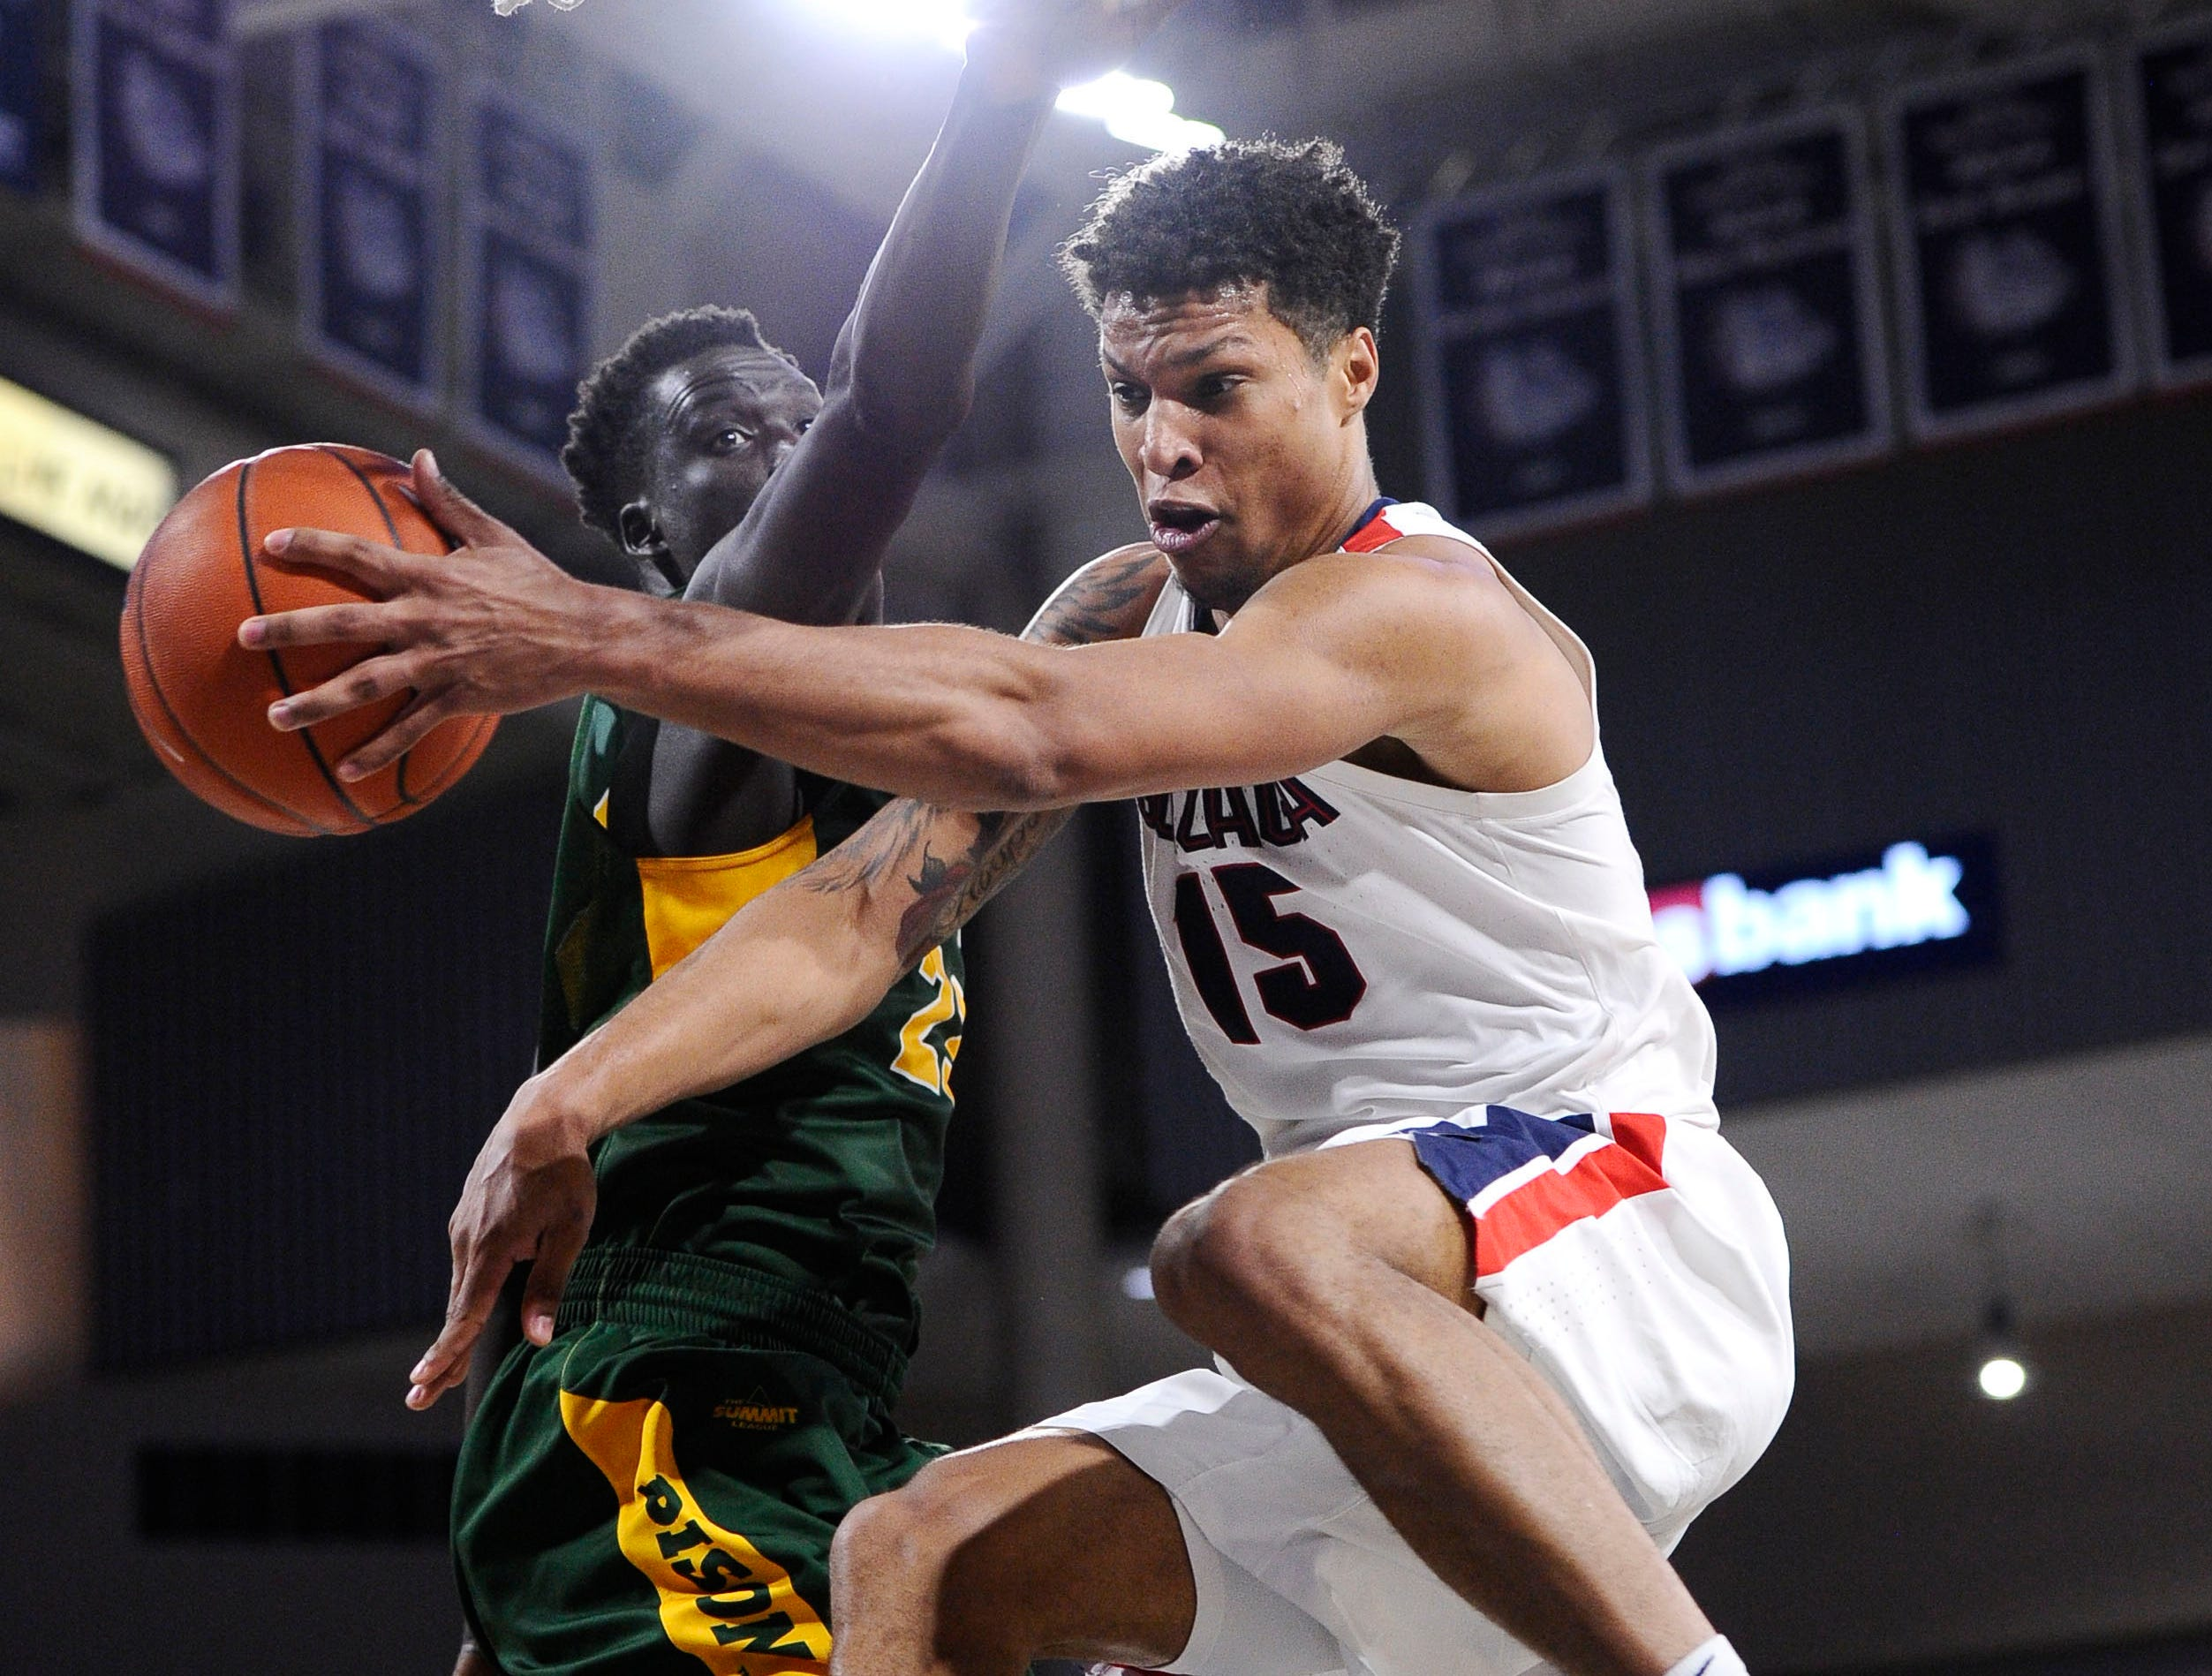 Nov. 26: Gonzaga Bulldogs forward Brandon Clarke (15) passes the basketball around North Dakota State Bison forward Deng Geu (23) in the second half at McCarthey Athletic Center.